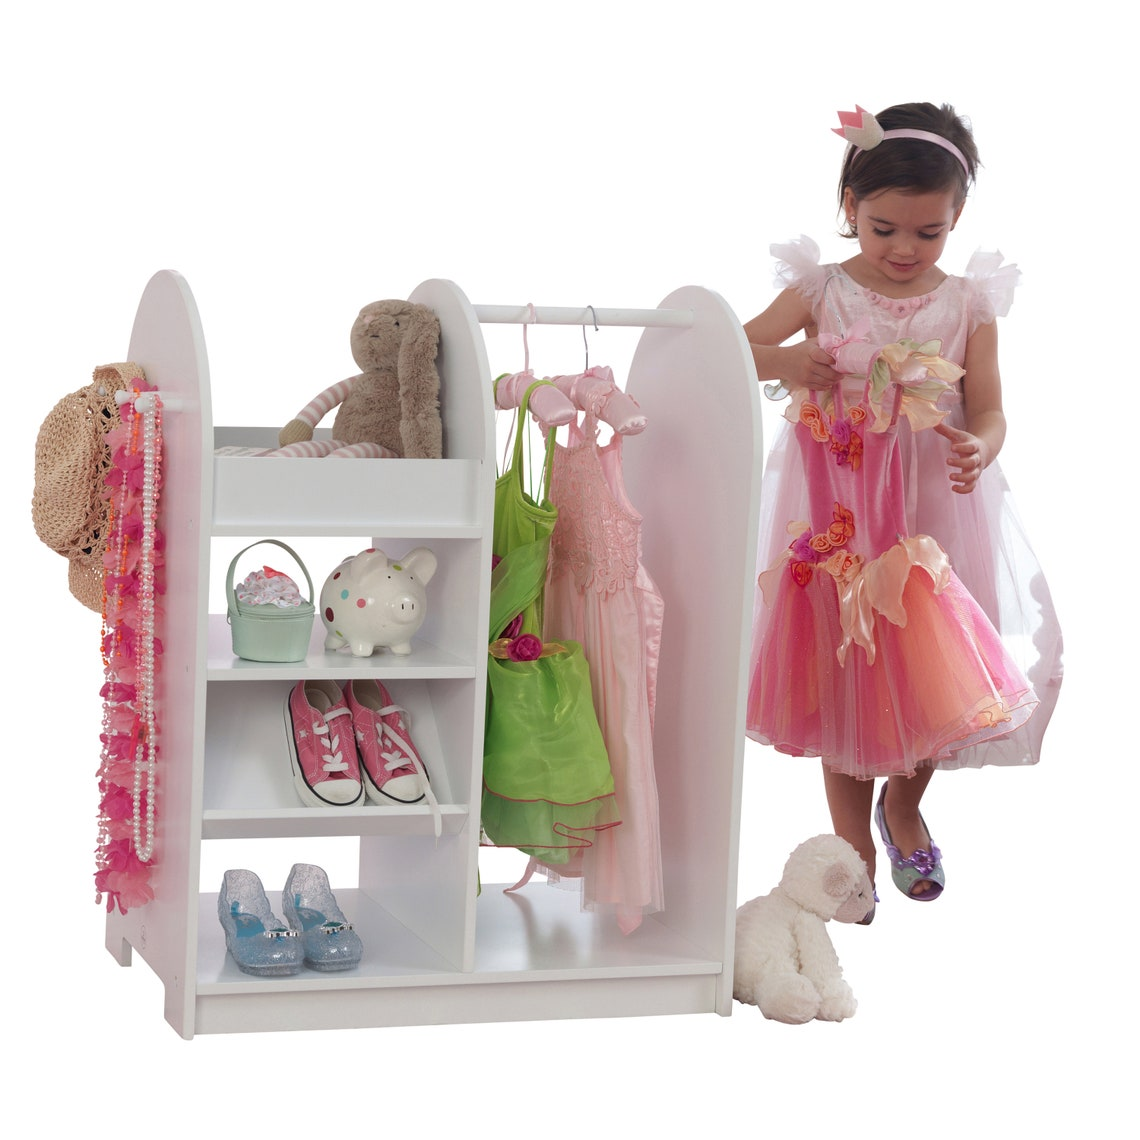 Fashion Pretend Play Station - White, Baby Girl Dress Up Storage Center, Childrens Clothing Rack, Wooden Garment Frame, Kids Dress Up Clothe